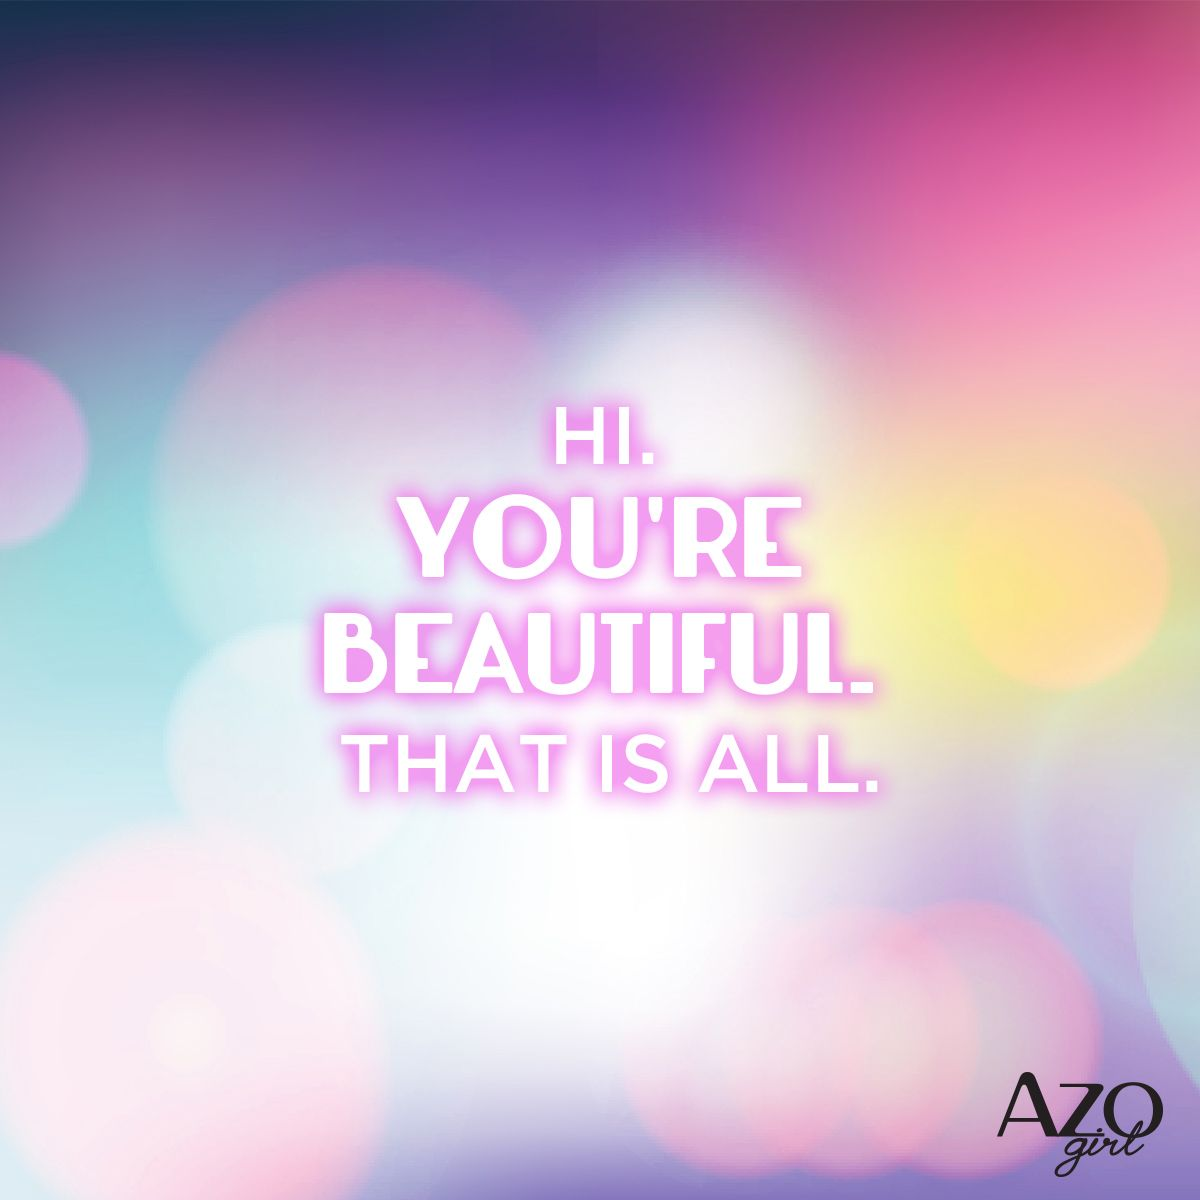 Hi. Youre beautiful. That is all. #Inspirational | Youre